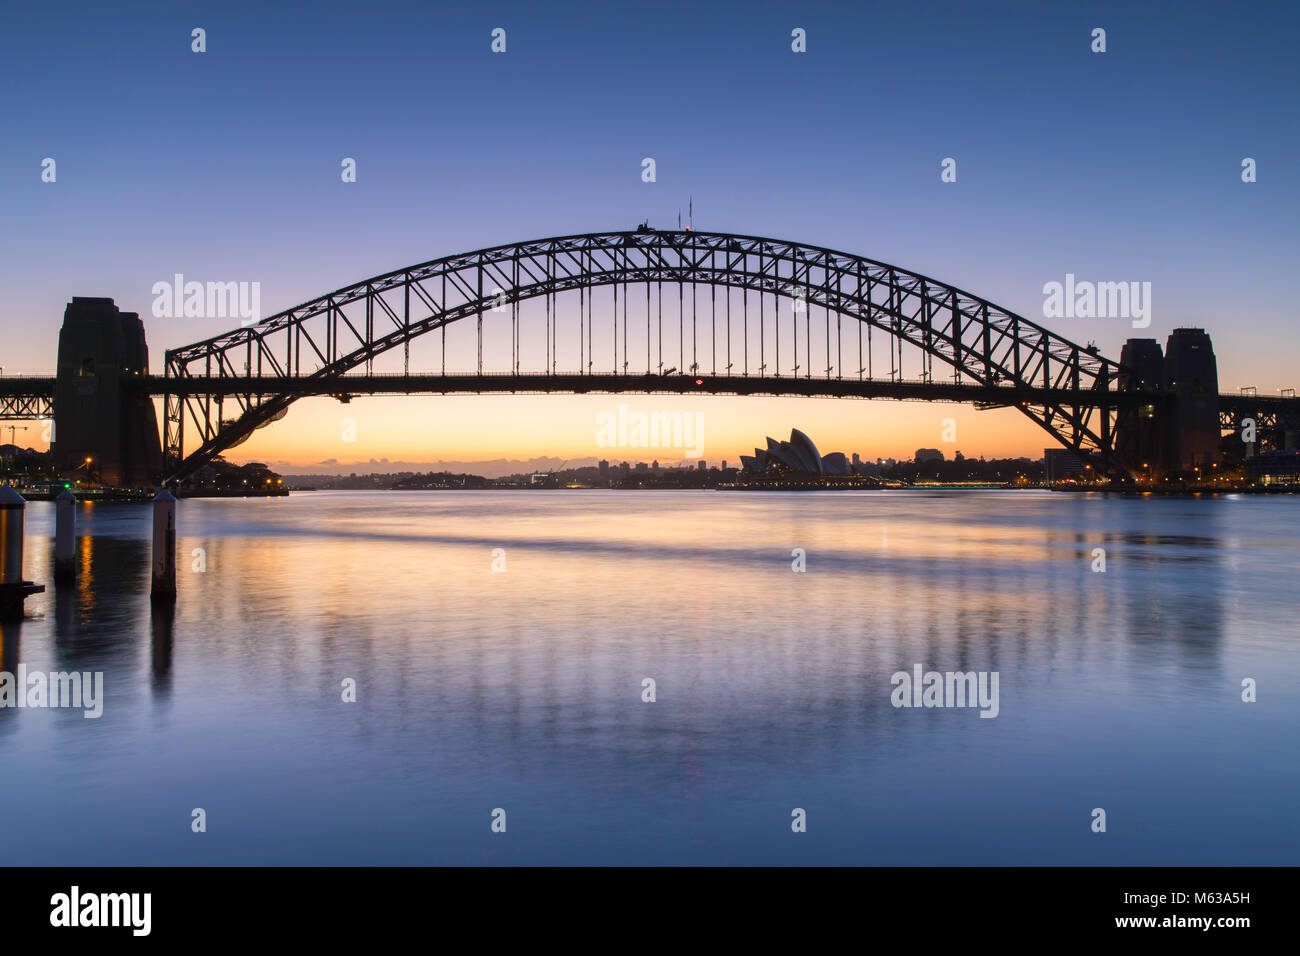 Sydney Harbour Bridge and Sydney Opera House at dawn, Sydney, New South Wales, Australia - Stock Image